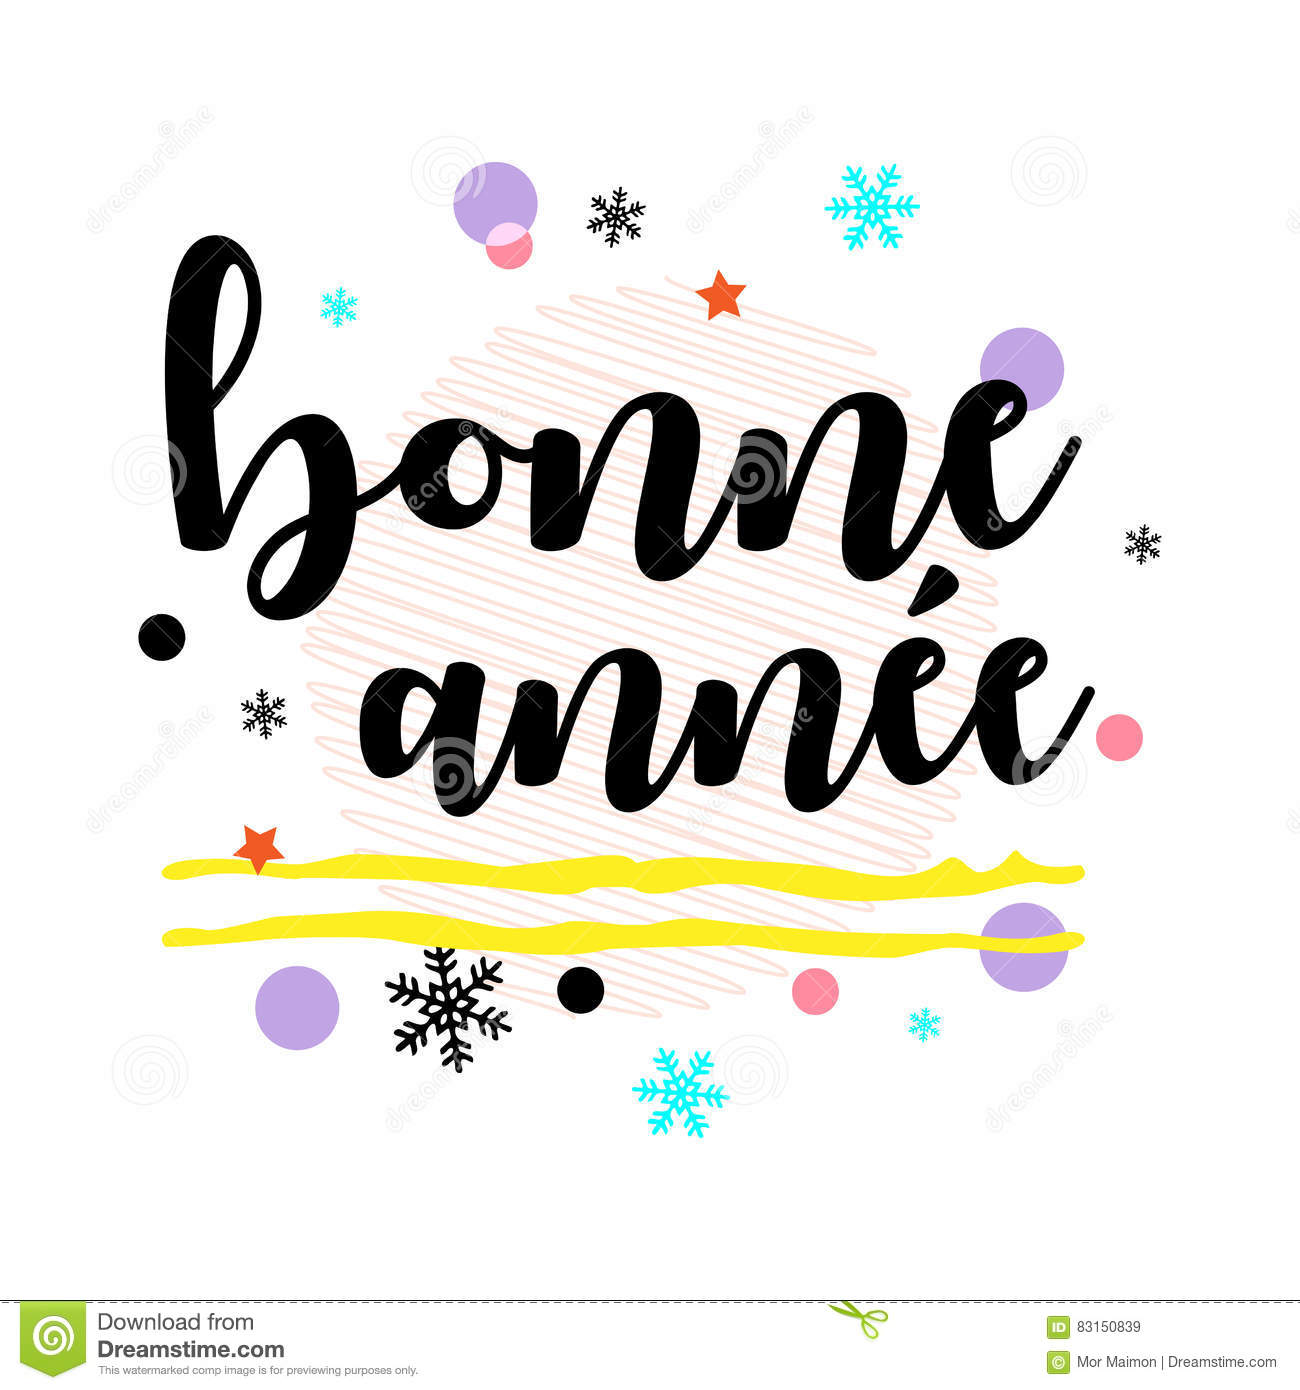 Bonne Annee. Happy New Year French Greeting. Black Typographic.